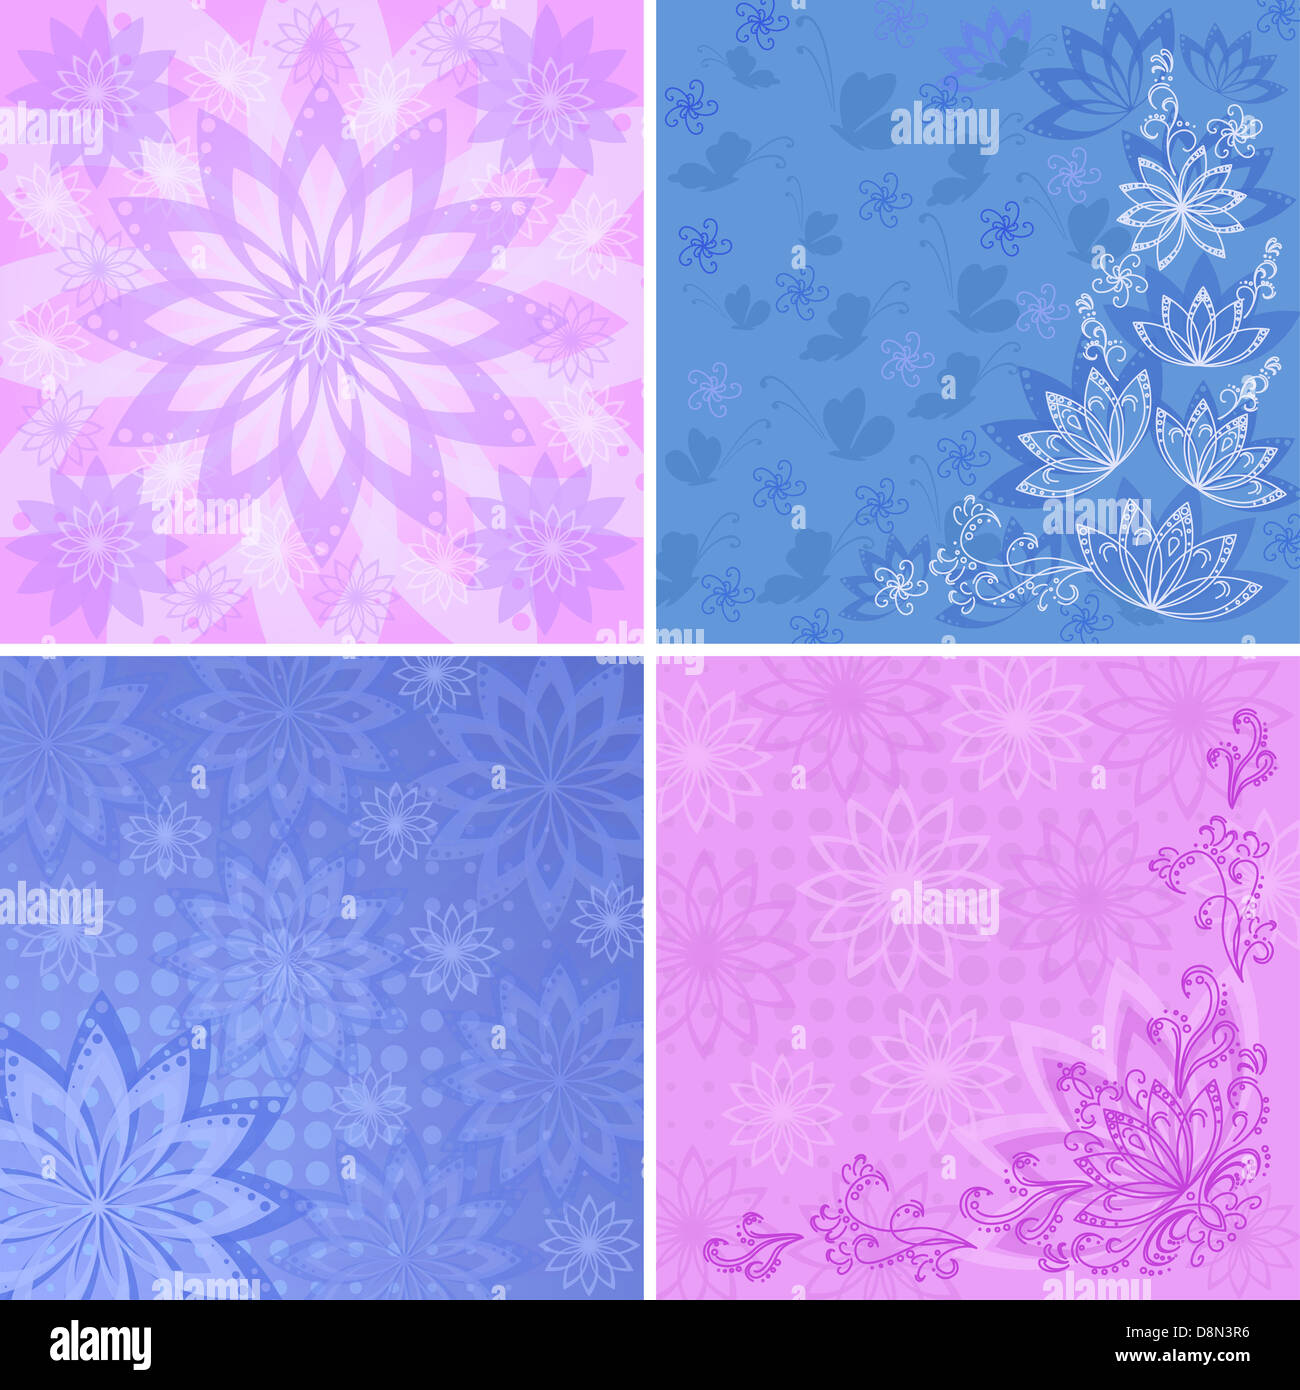 Set Abstract Floral Backgrounds Stock Photo 57012346 Alamy